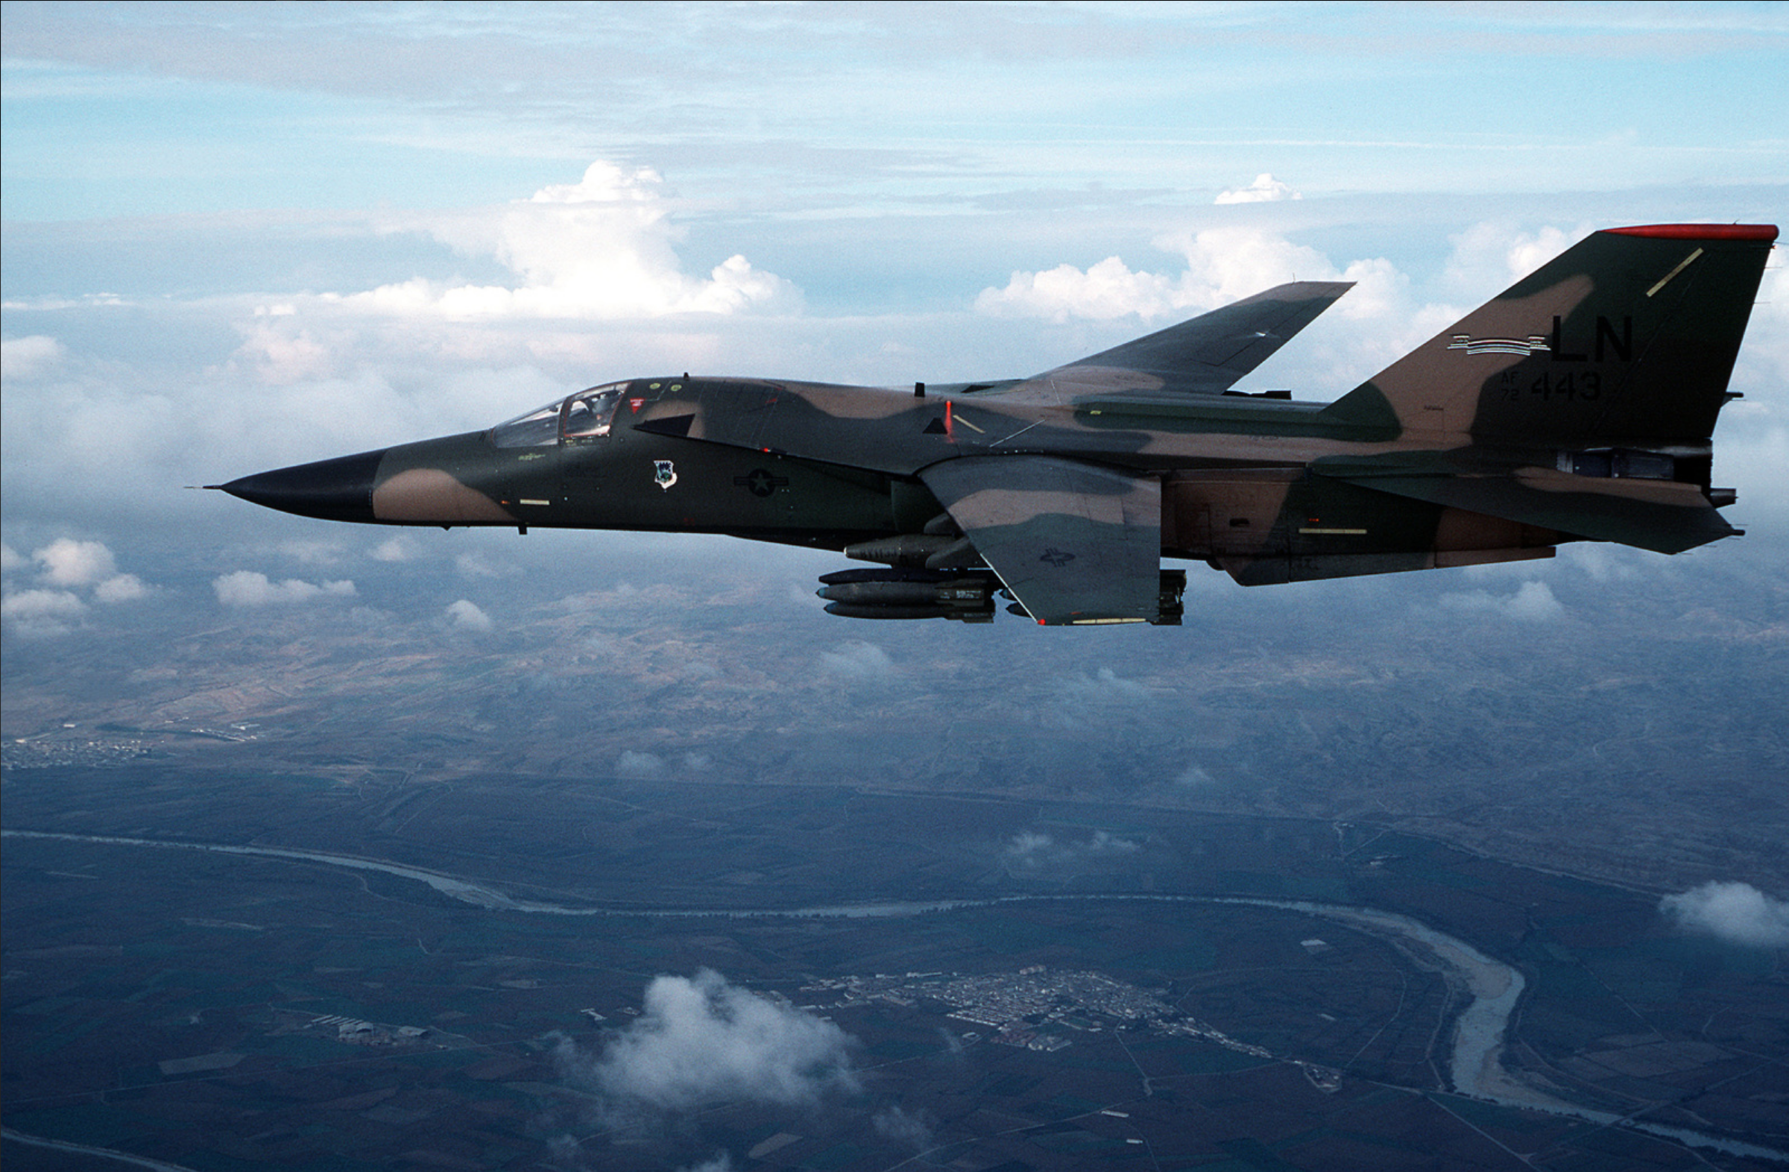 48th_tactical_fighter_wing_f-111fk.png